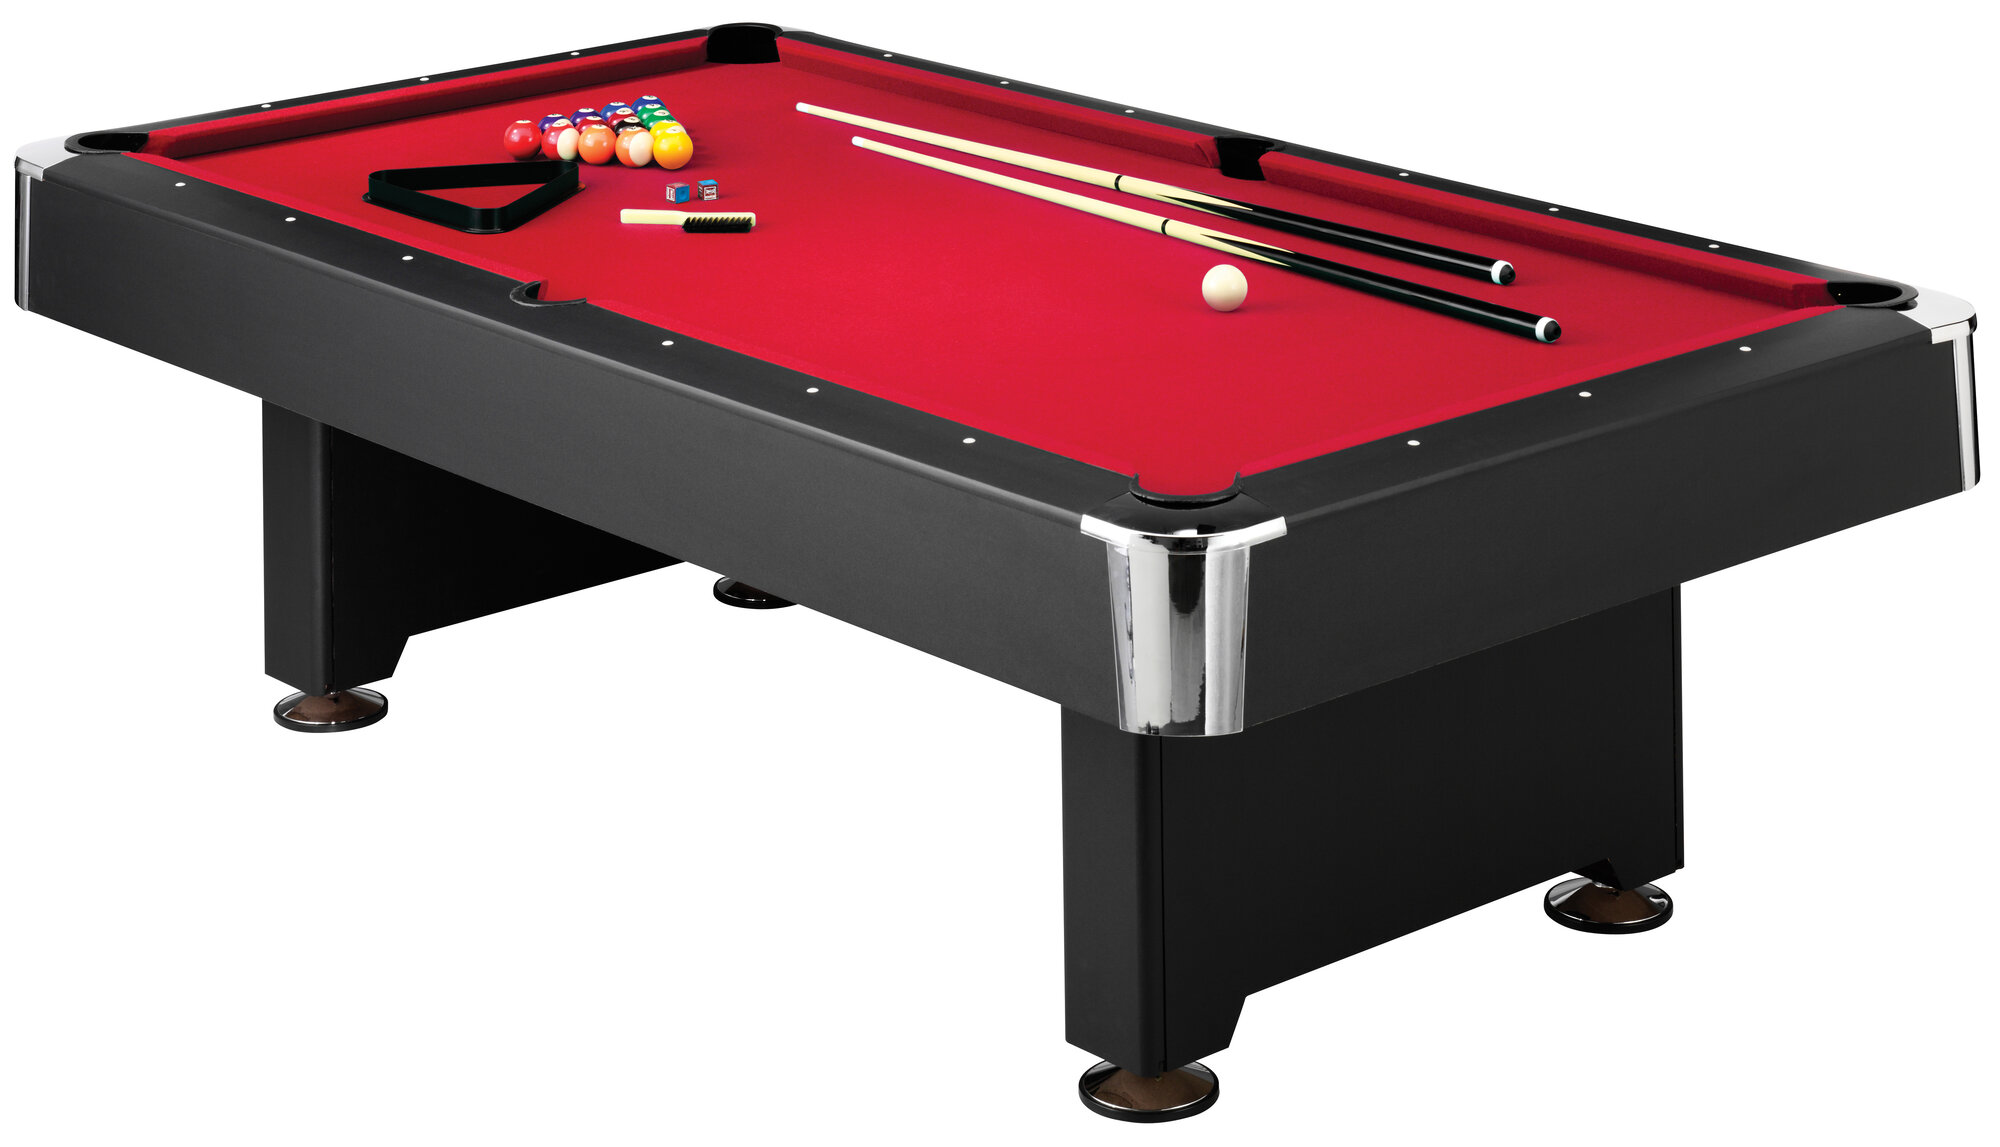 Mizerak donovan ii slate 8 39 pool table accessories ebay - Billiard table accessories ...